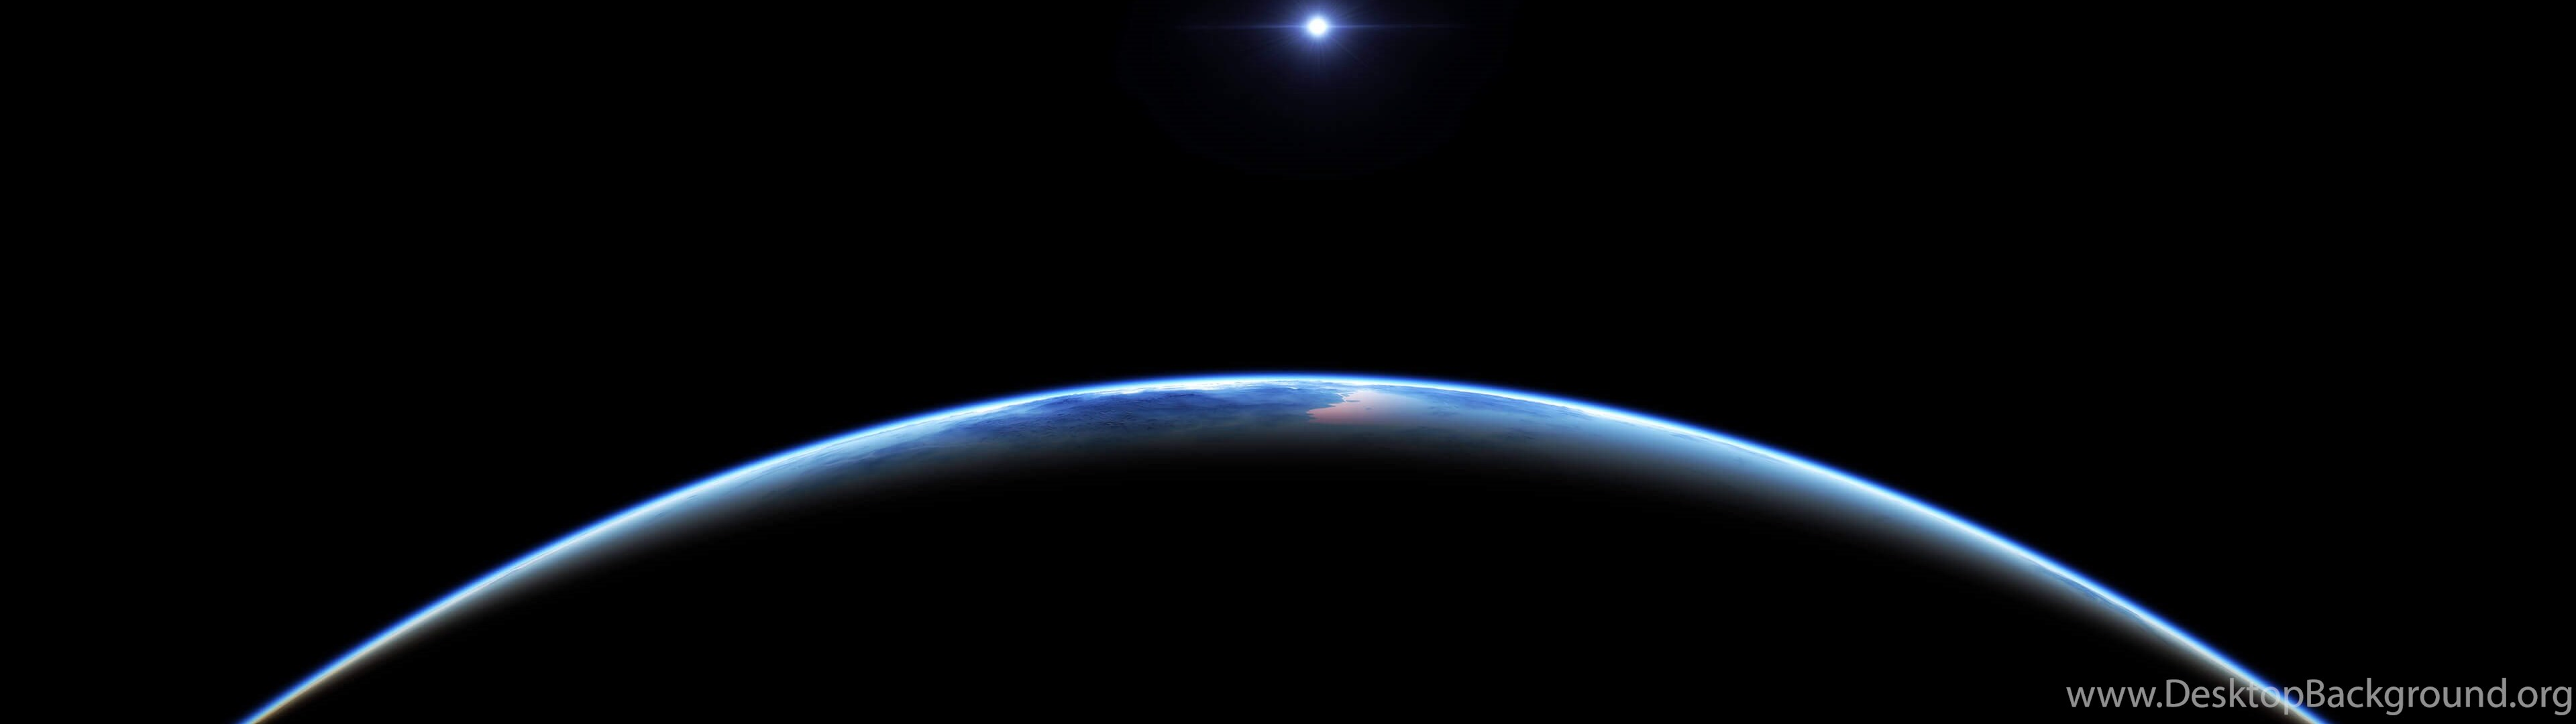 857327 earth at night view from space 4k